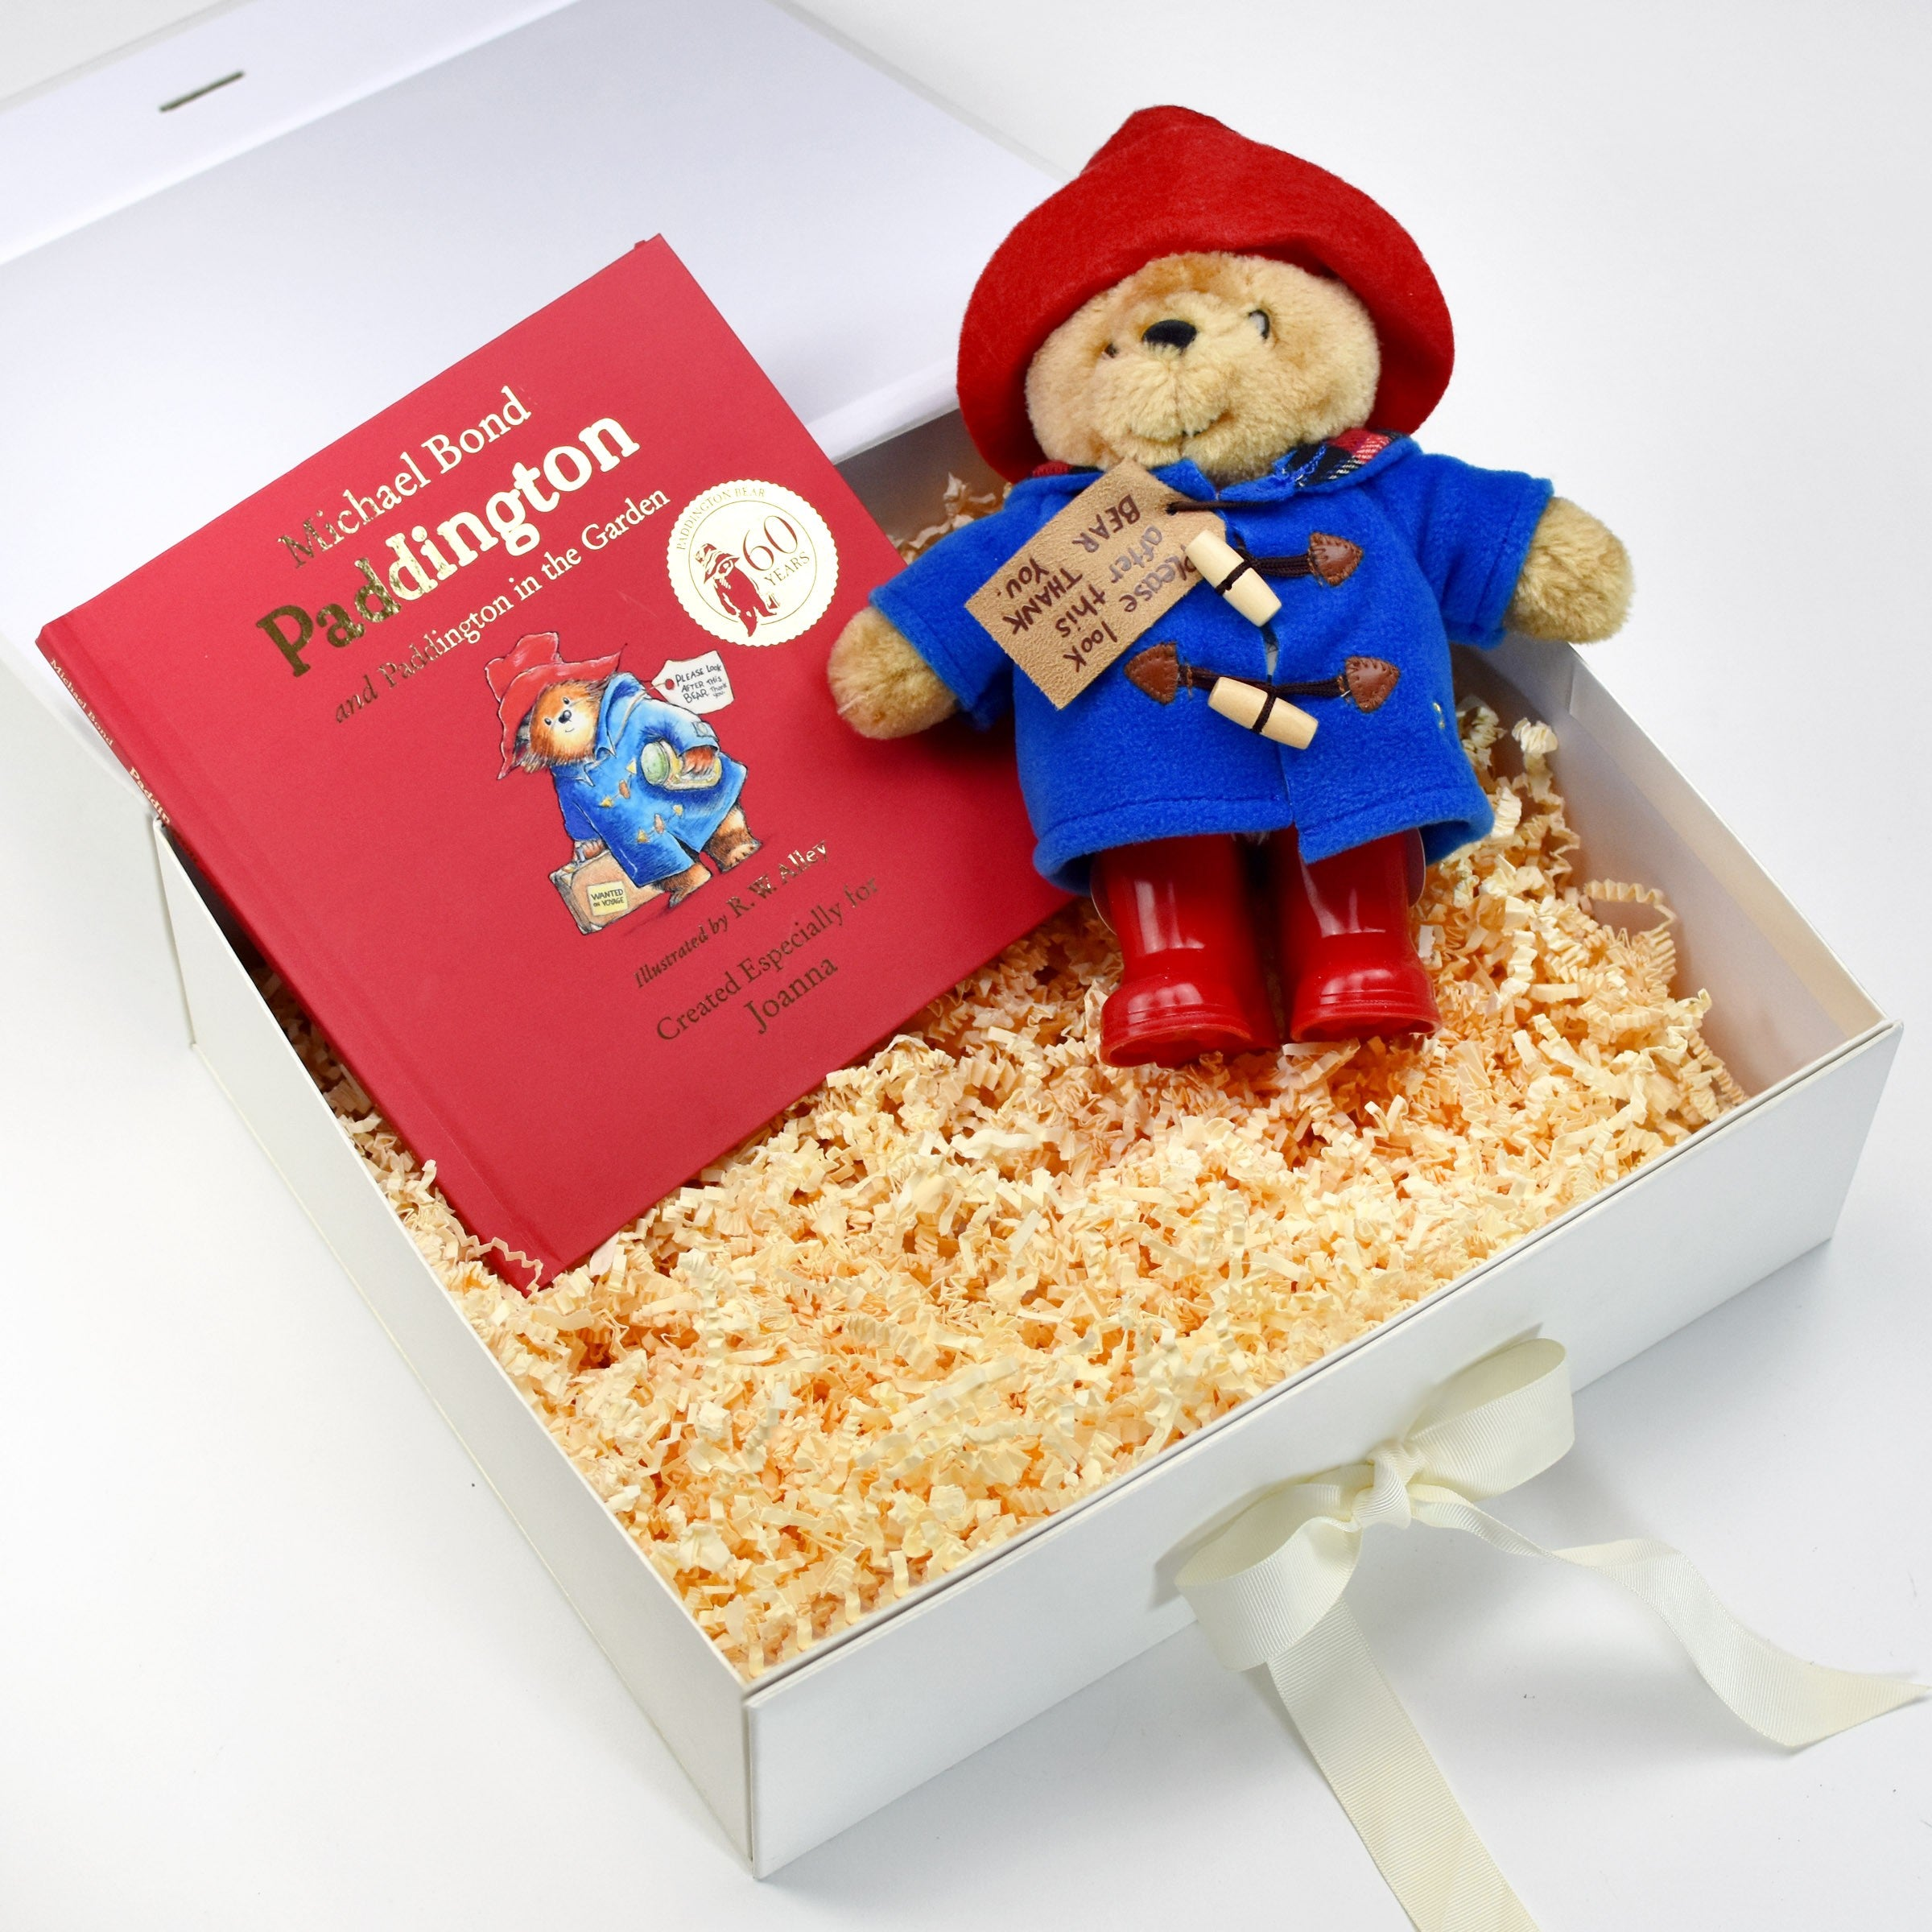 Personalised Paddington Personalised Story Book and Plush Toy Giftset, Media by Low Cost Gifts